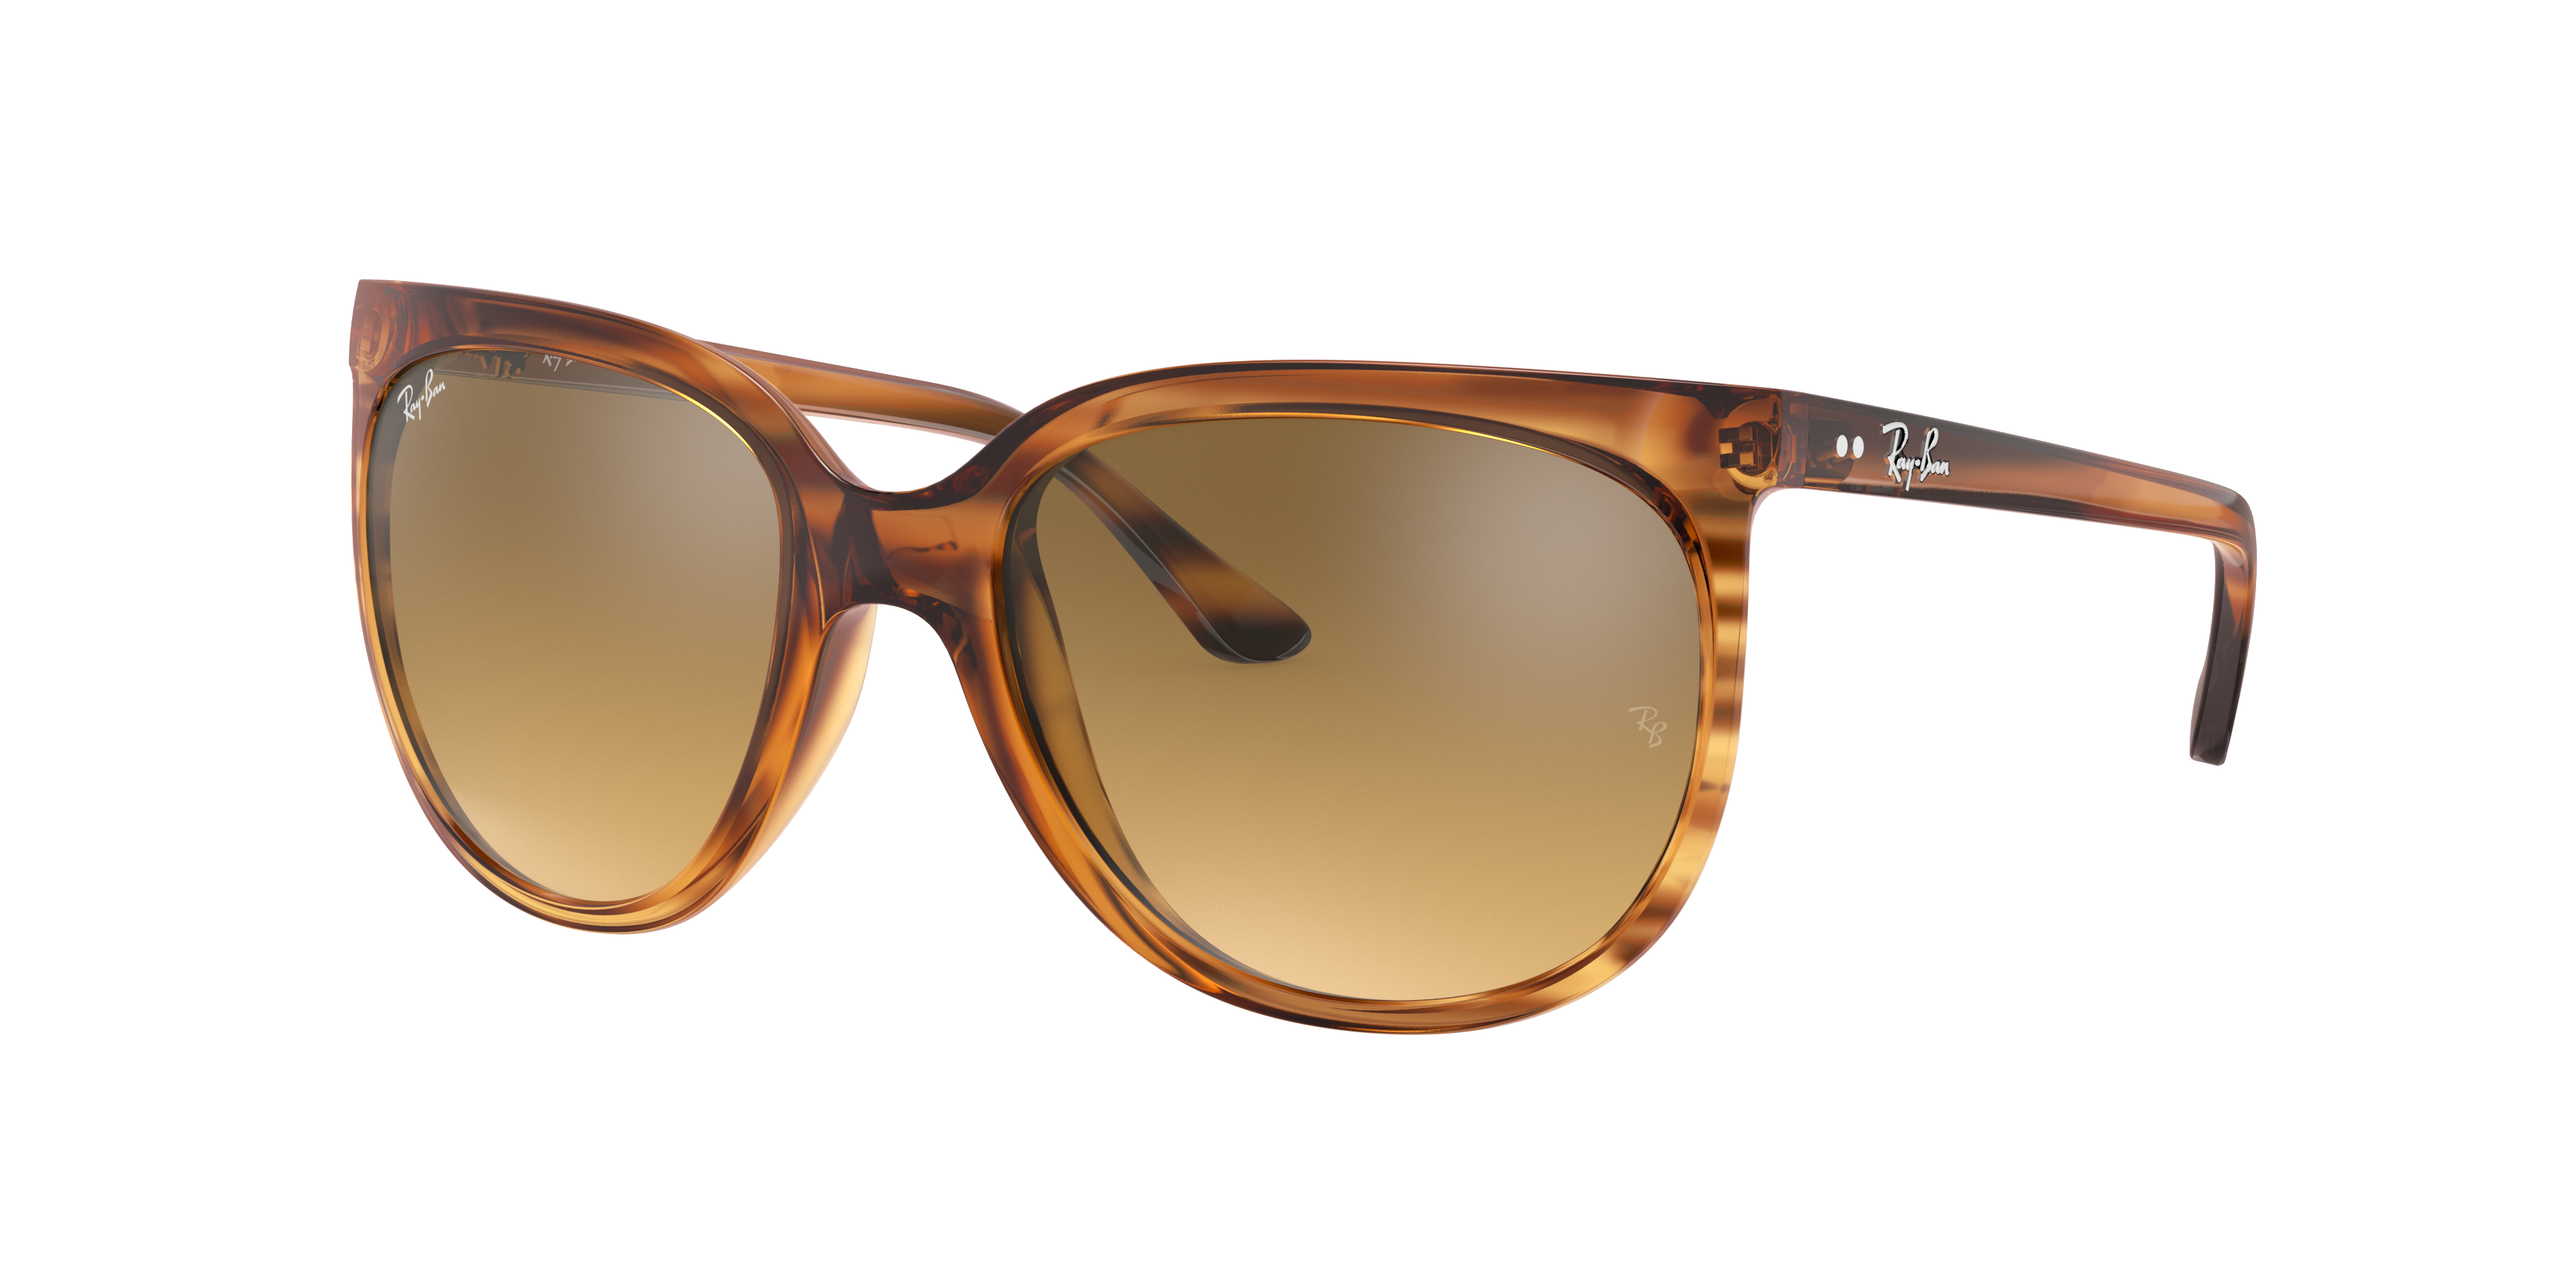 Ray-Ban Cats 1000 Striped Brown, Brown Lenses - RB4126